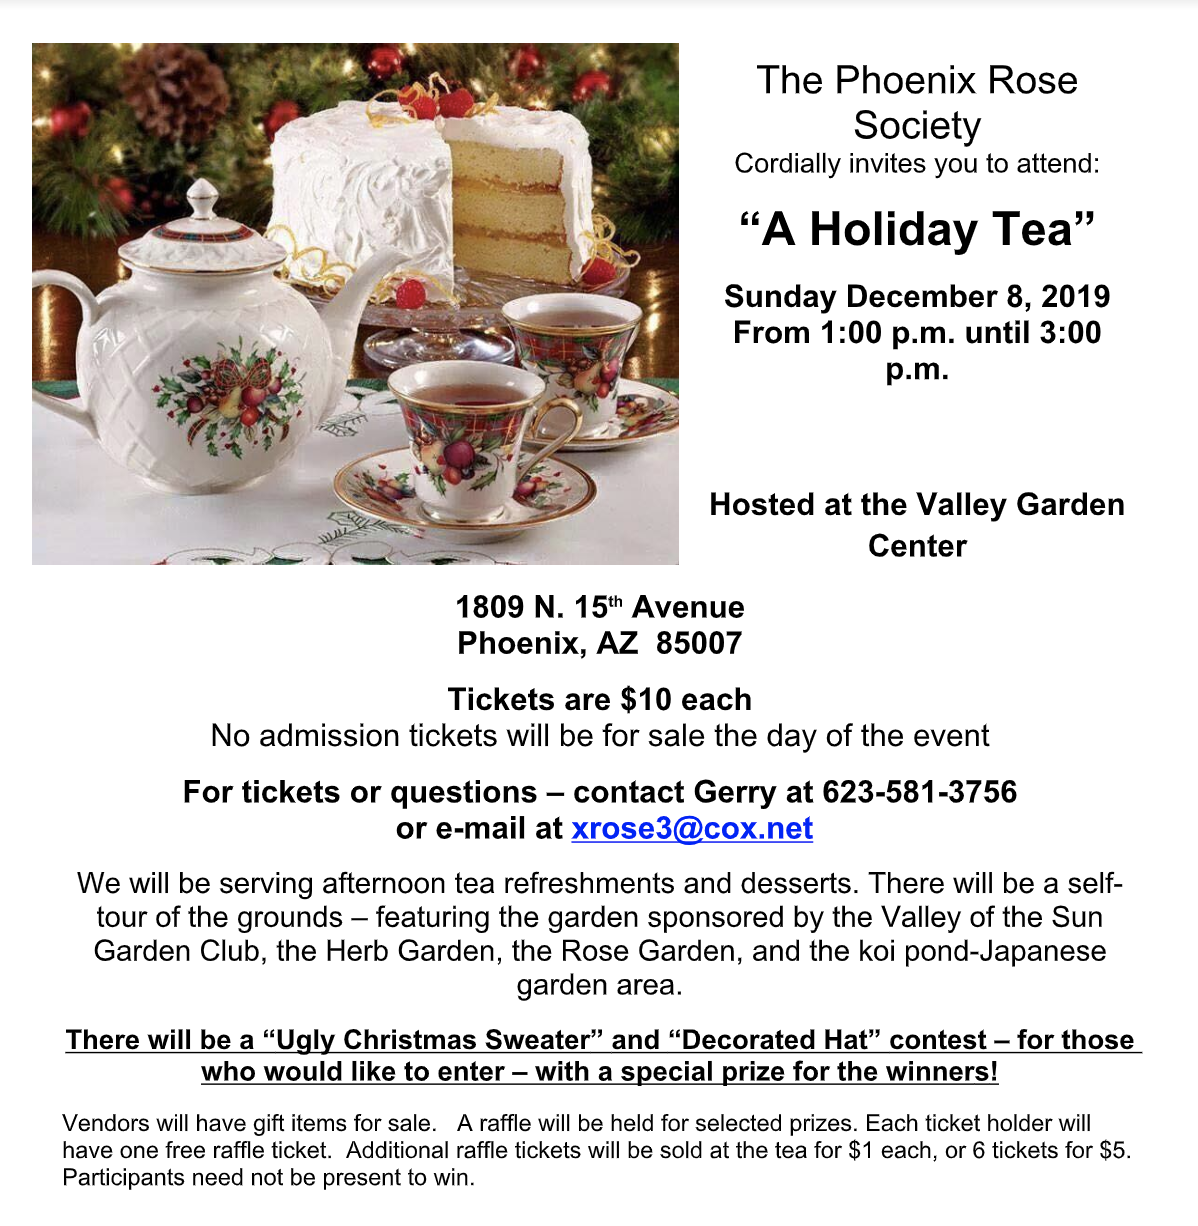 phoenix rose society holiday tea 2019 valley garden center.png